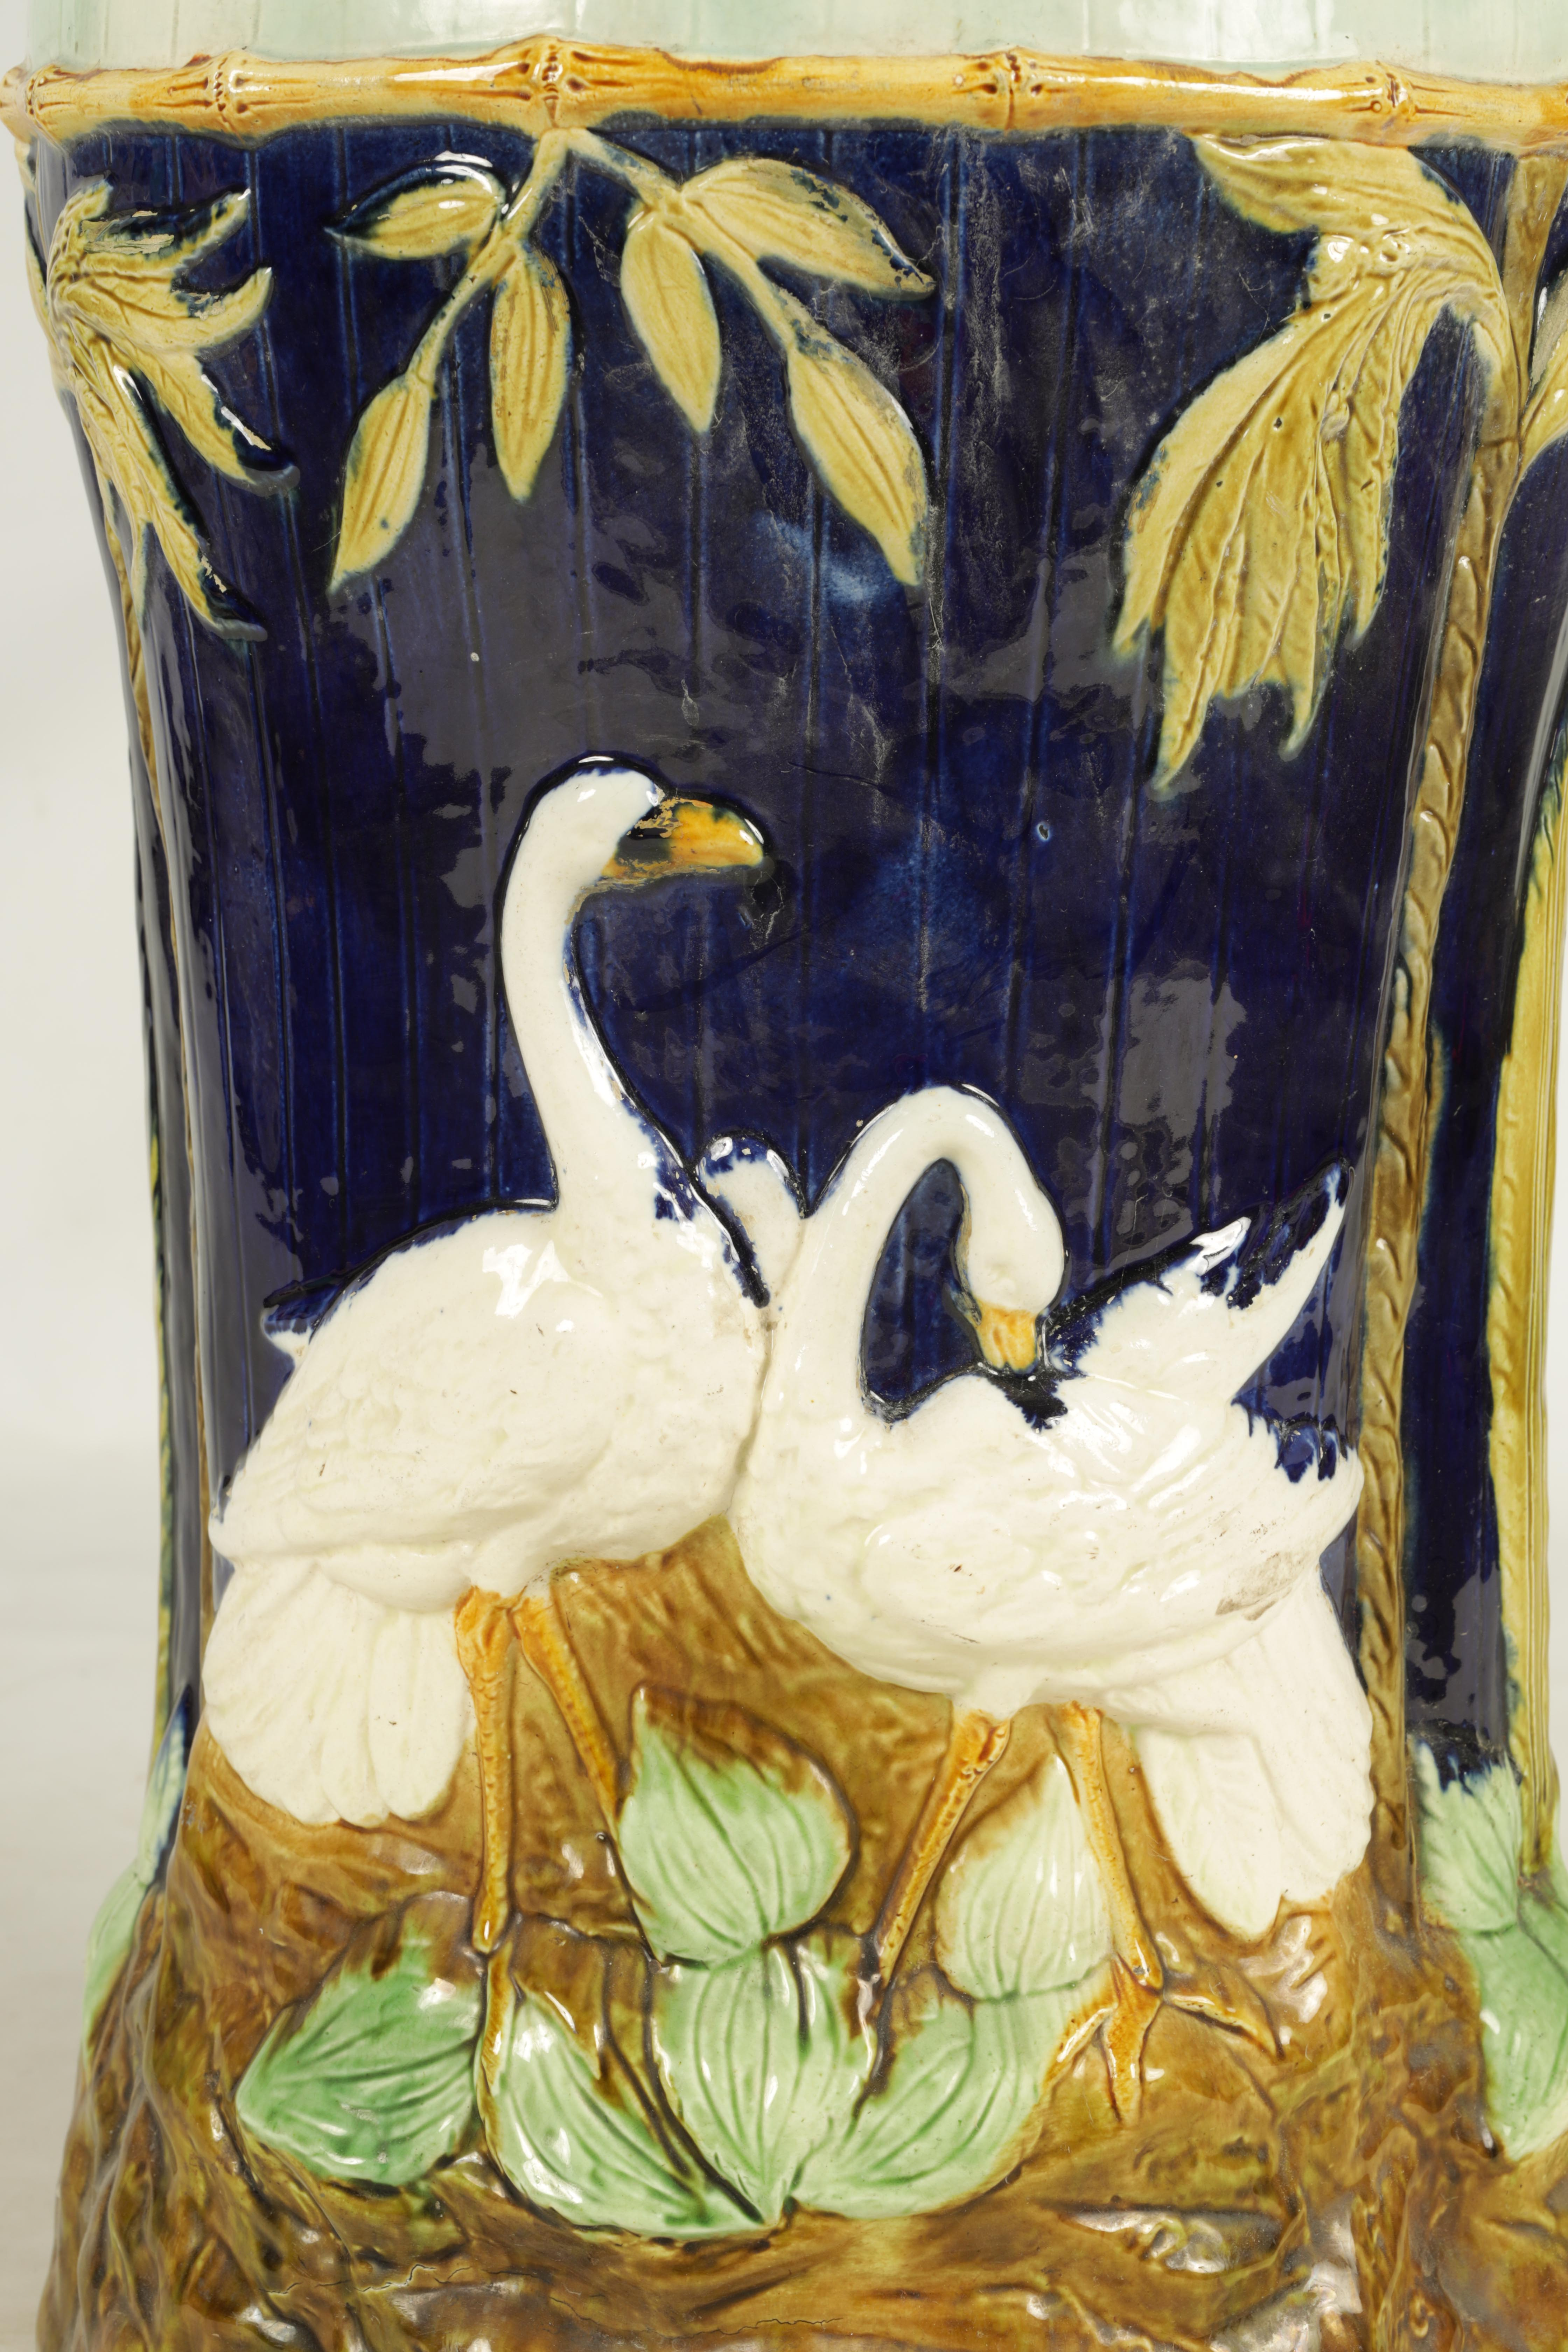 A LATE 19TH CENTURY MAJOLICA GARDEN SEAT decorated with storks between palm trees 54cm high - Image 3 of 8